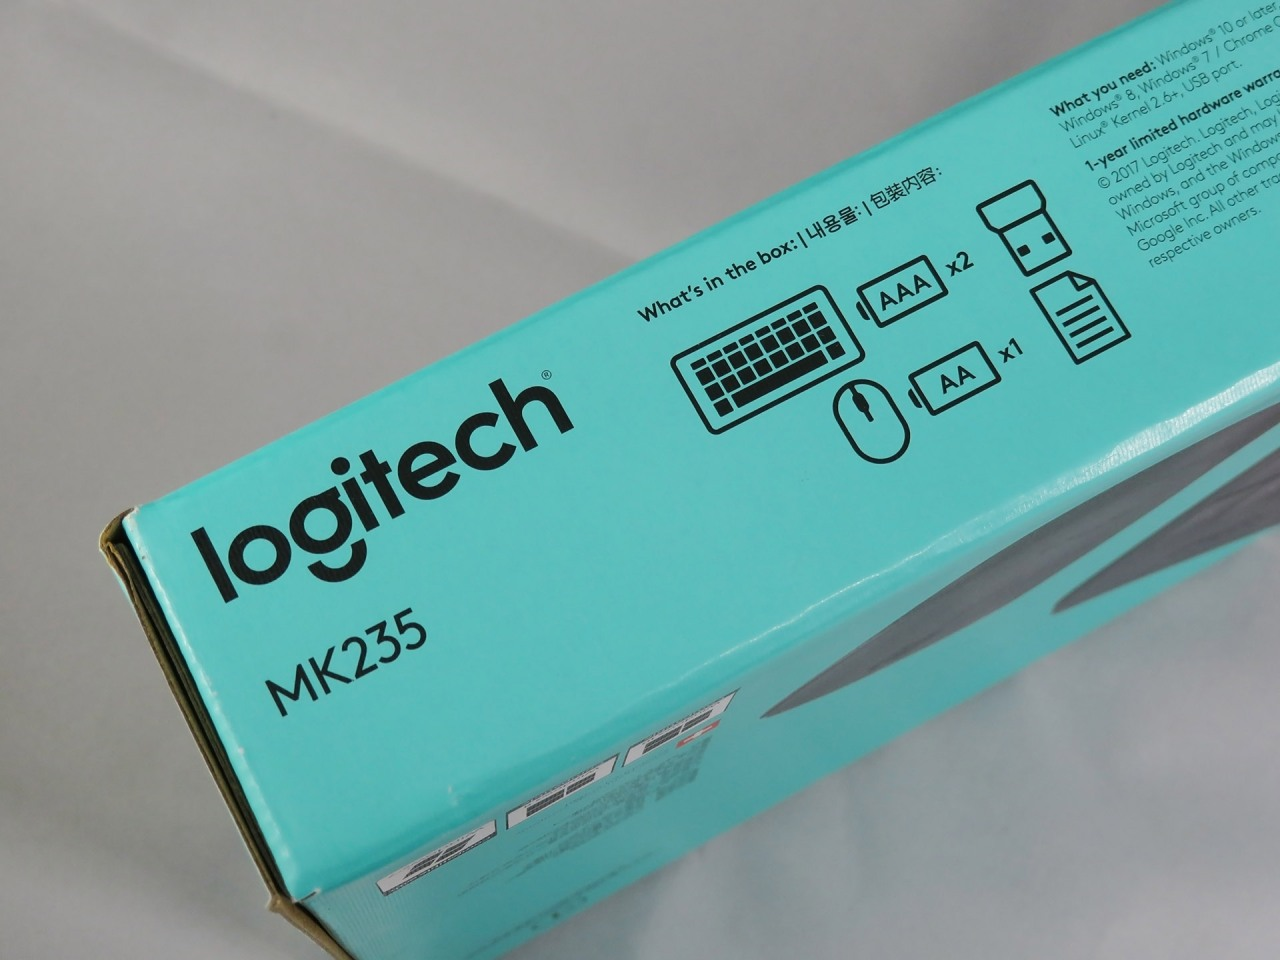 Logitech MK235 Wireless Keyboard & Mouse Kit